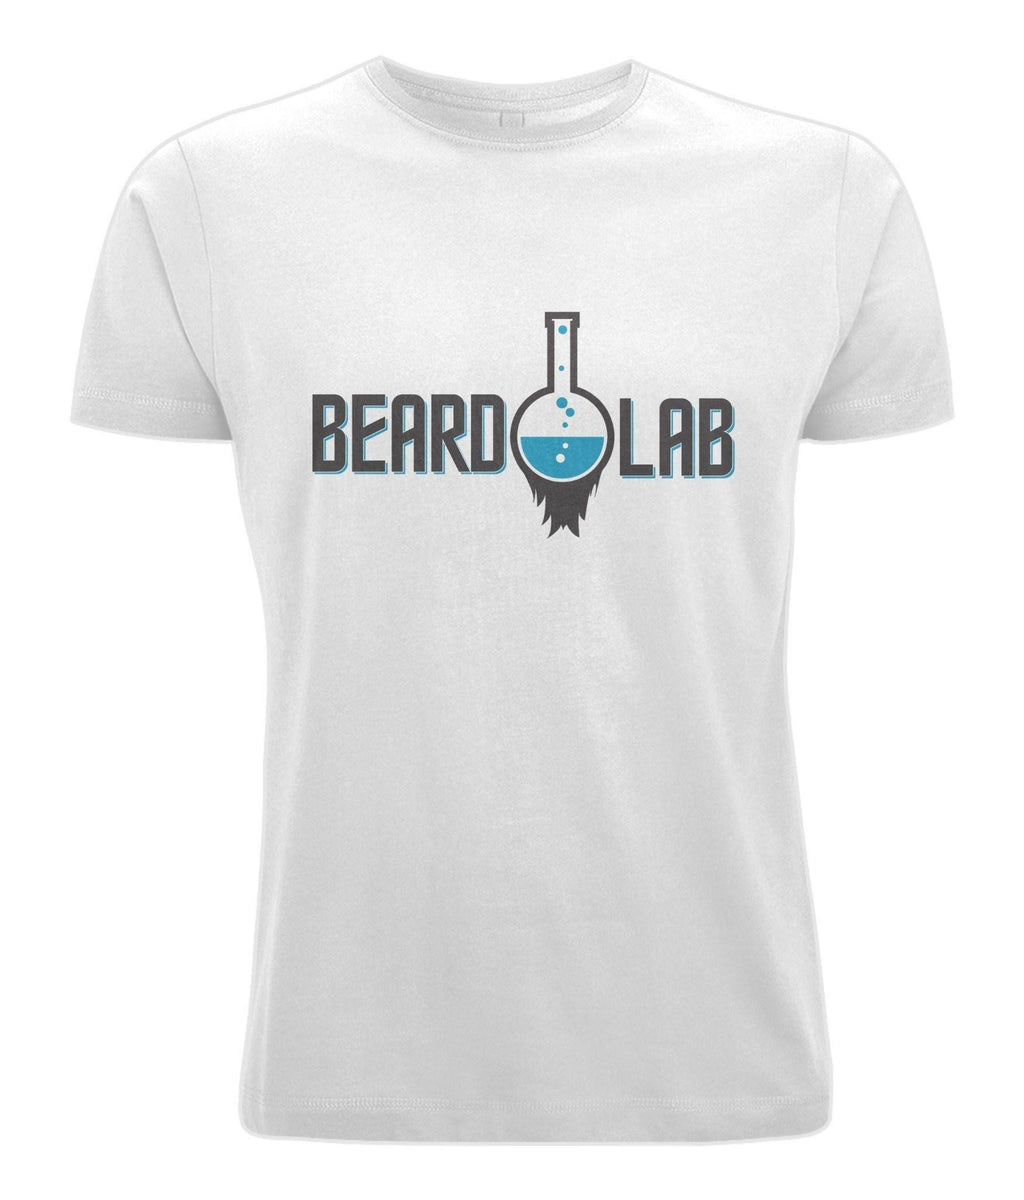 Beard Lab Bamboo T-Shirt - BeardLab Clothing - Beard Oil UK, Beard Care BeardLab - UK Beard Oil - Beard Products